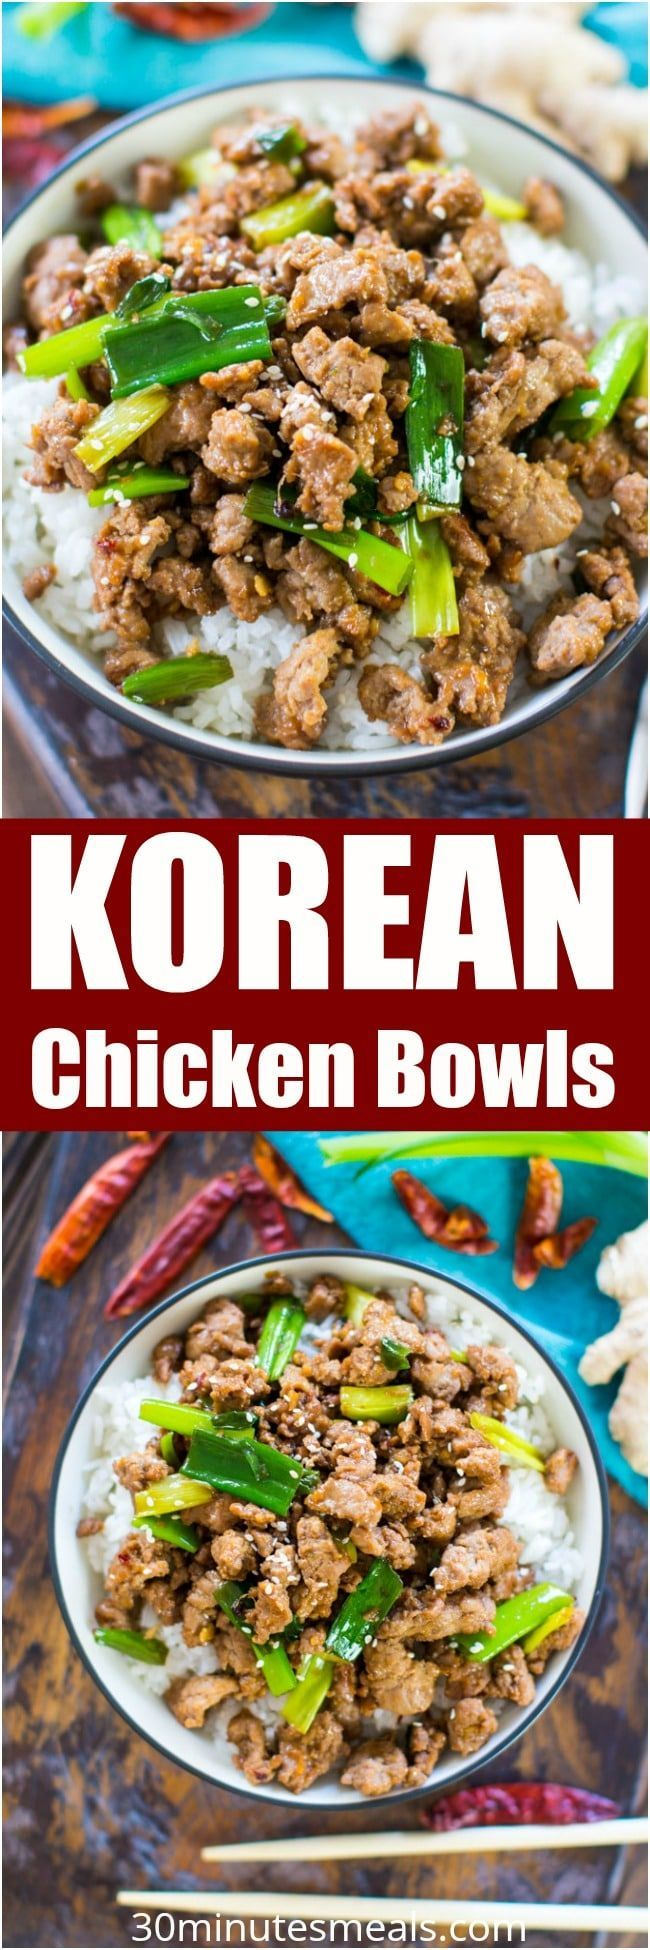 Korean Chicken Bowls are one of the easiest and tastiest dishes you can make in just under 20 minutes. Made in one pan with easy ingredients. #chicken #onepan #dinner